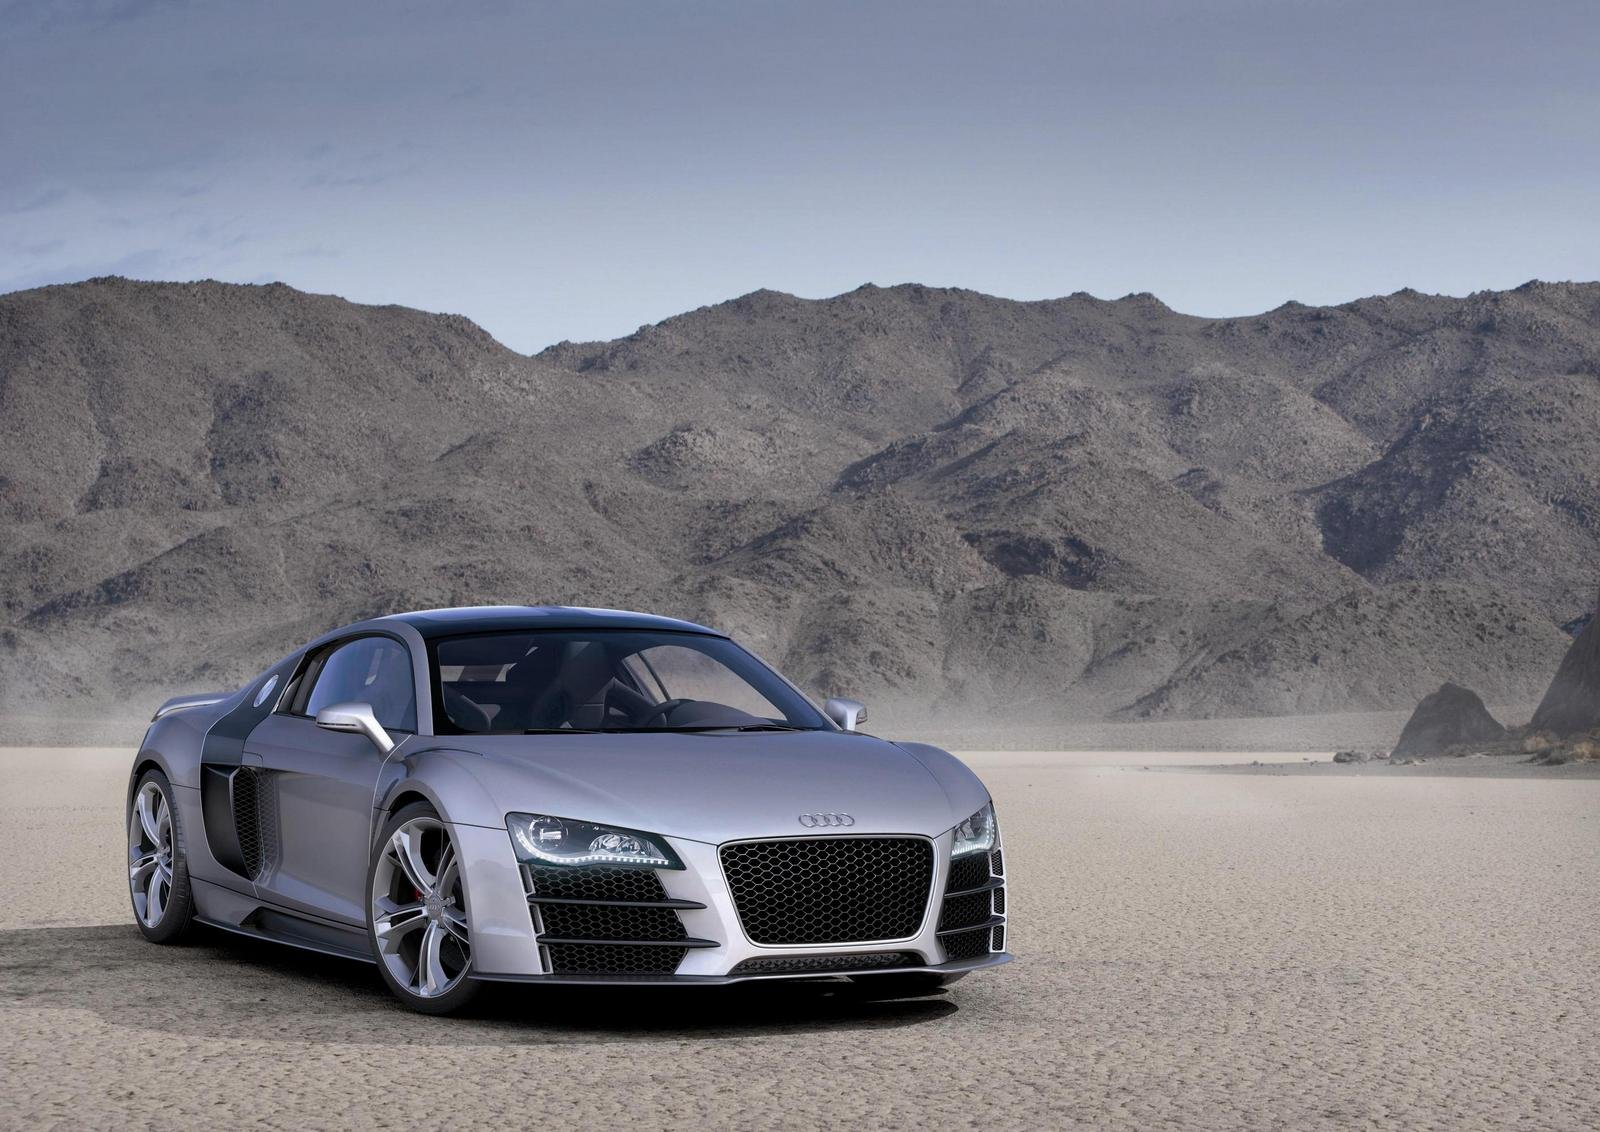 2008 Audi R8 V12 Tdi Picture 225233 Car Review Top Speed